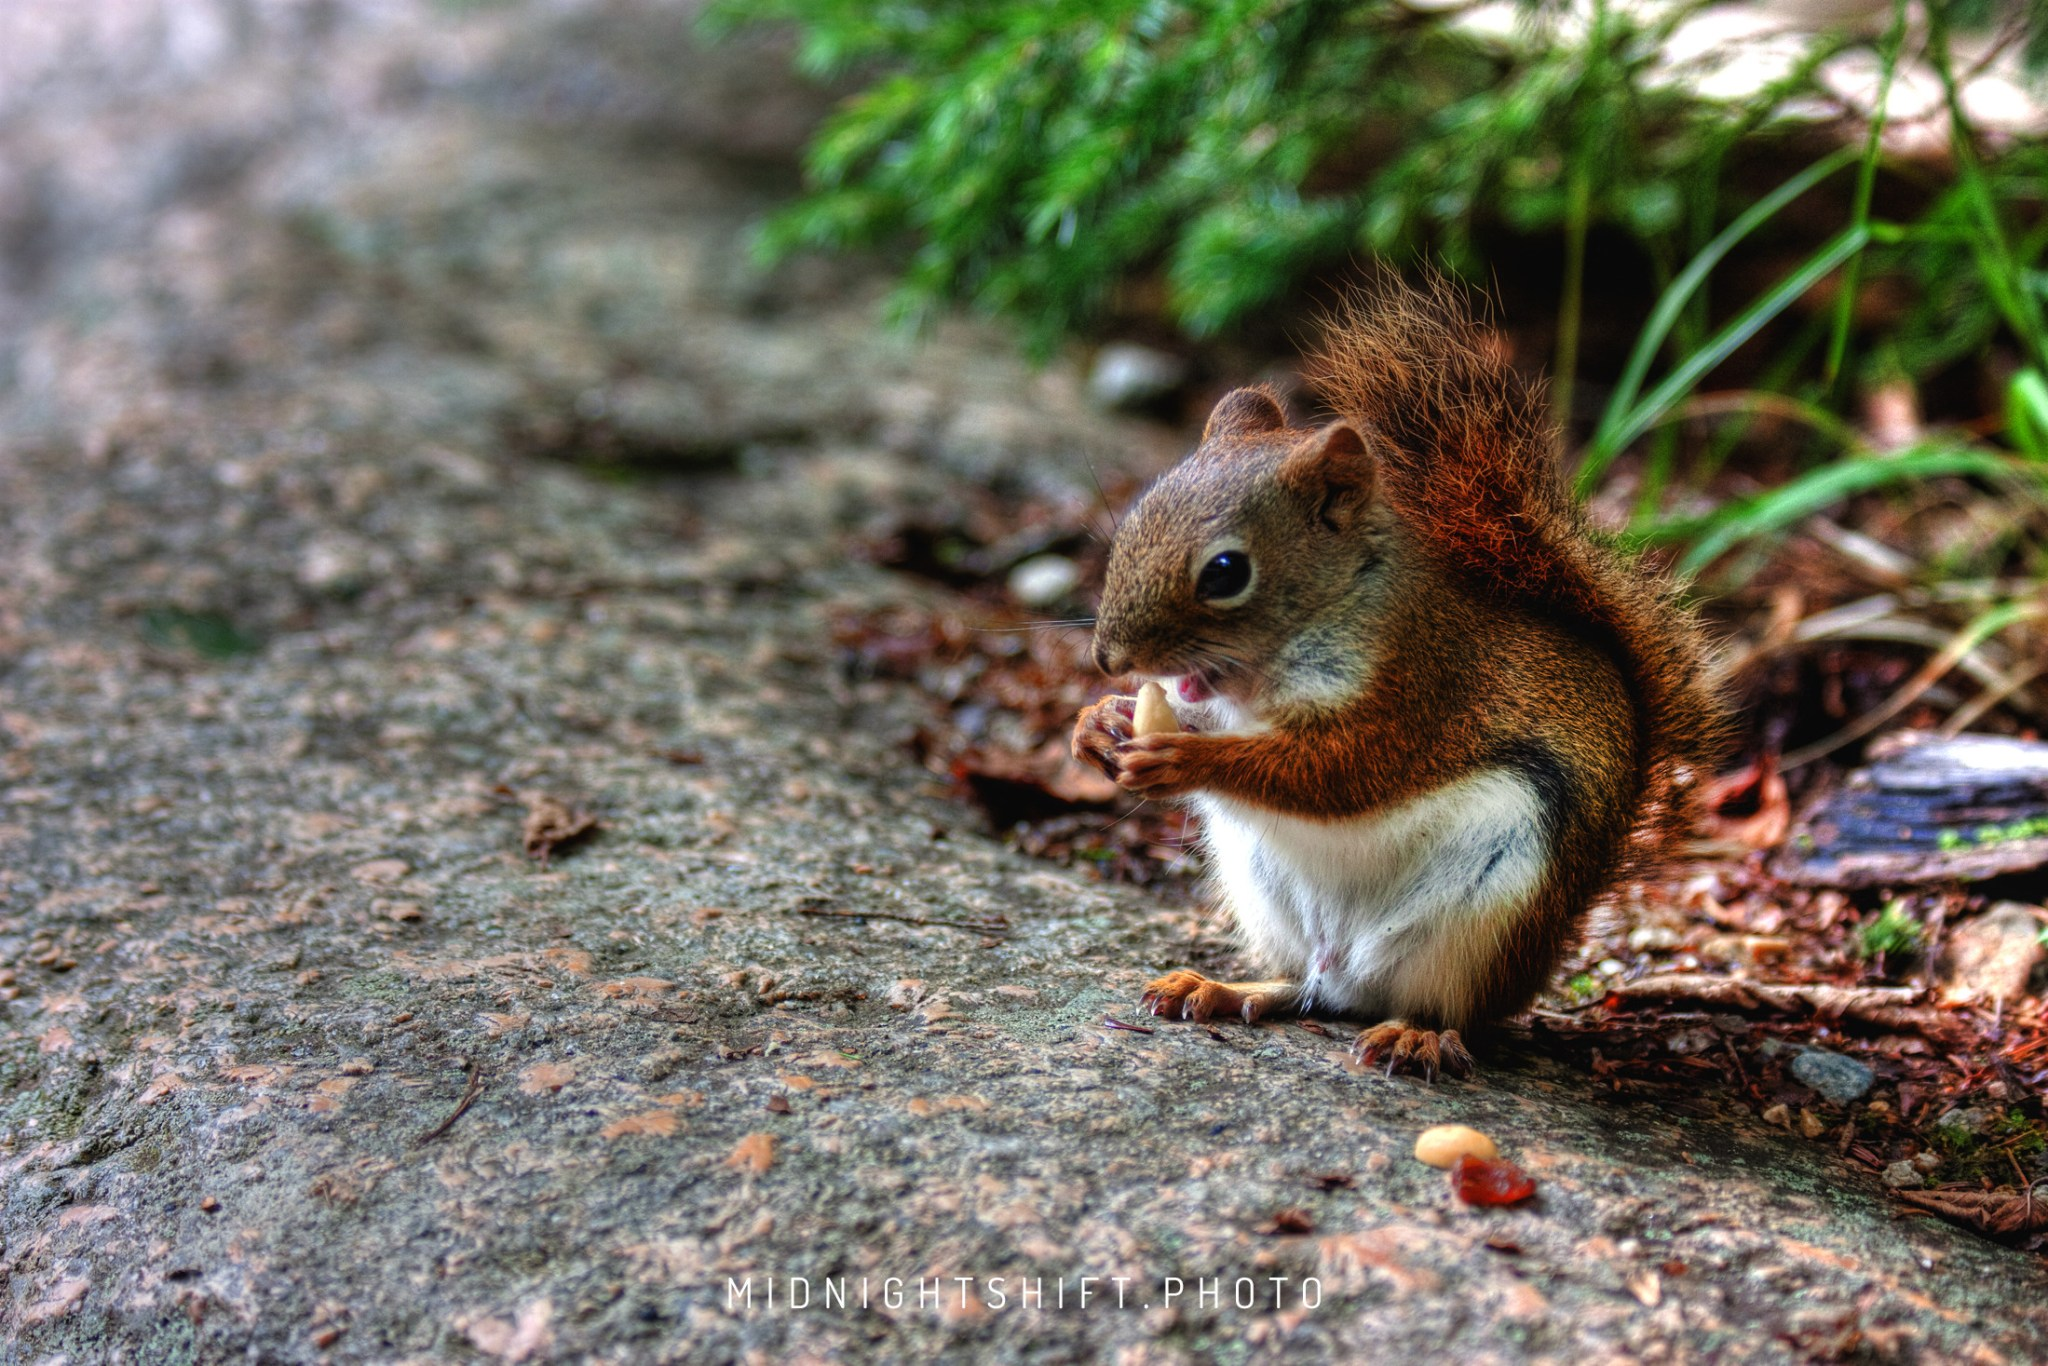 A Hungry Squirrel eats peanuts in New Hampshire